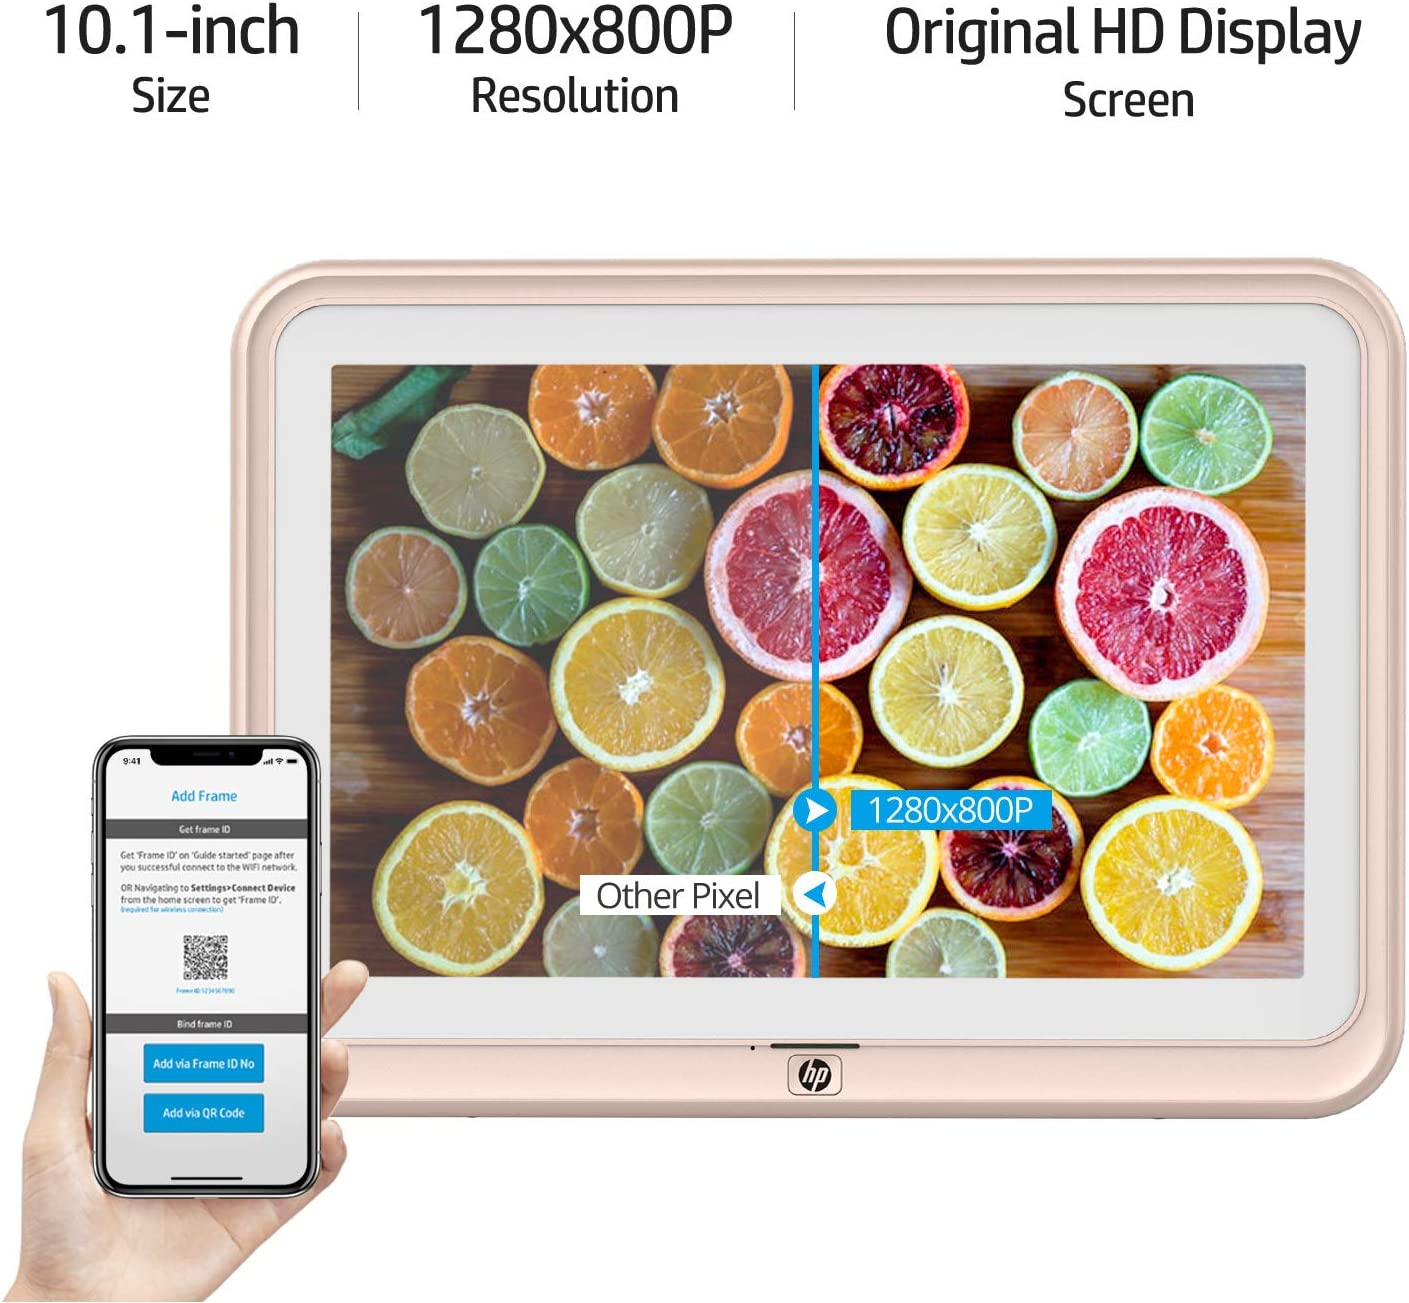 Calendar with Built-in Speakers 8GB Internal Storage Music Golden Support Photo iPhone /& Android App 1280x800 HD IPS Display Digital Picture Frame HP 10.1 inch WiFi Photo Frame